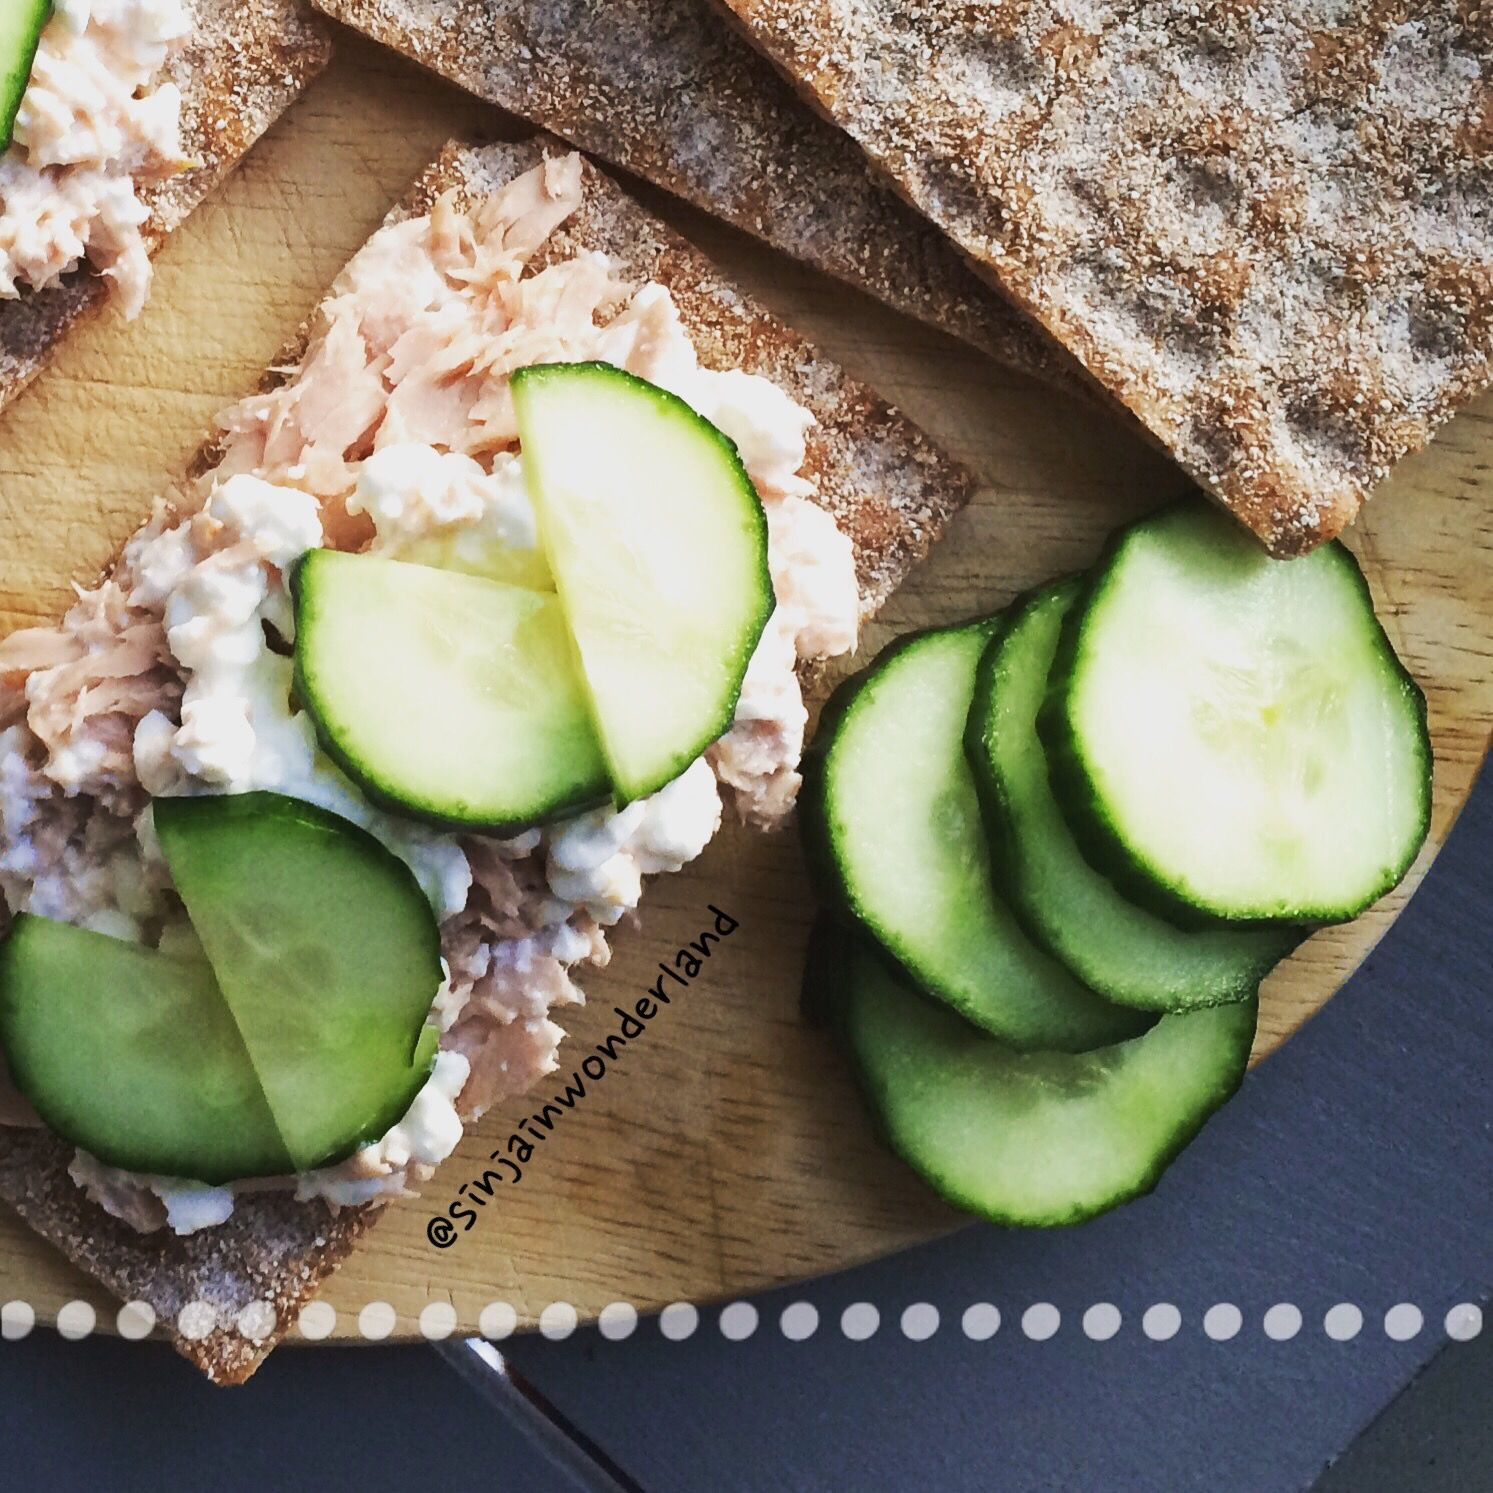 crispbread with cottage cheese and tuna cucumber as topping